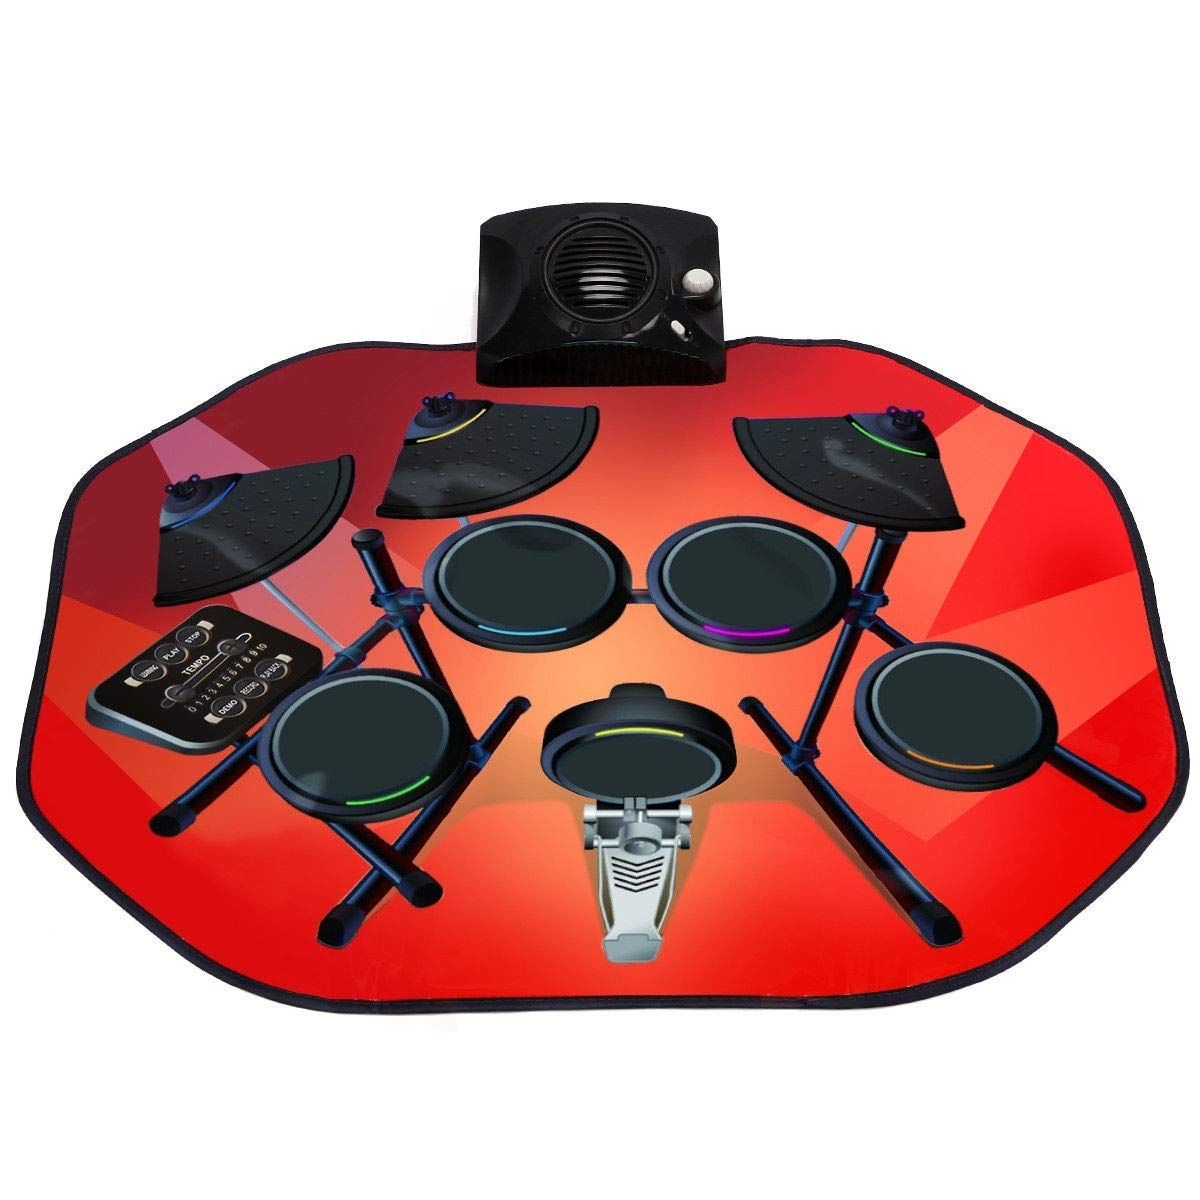 USA_BEST_SELLER Electronic Glowing Play Drum Mats Kit Set with MP3 Cable Great Holiday Birthday Gift for Kids by USA_BEST_SELLER (Image #1)